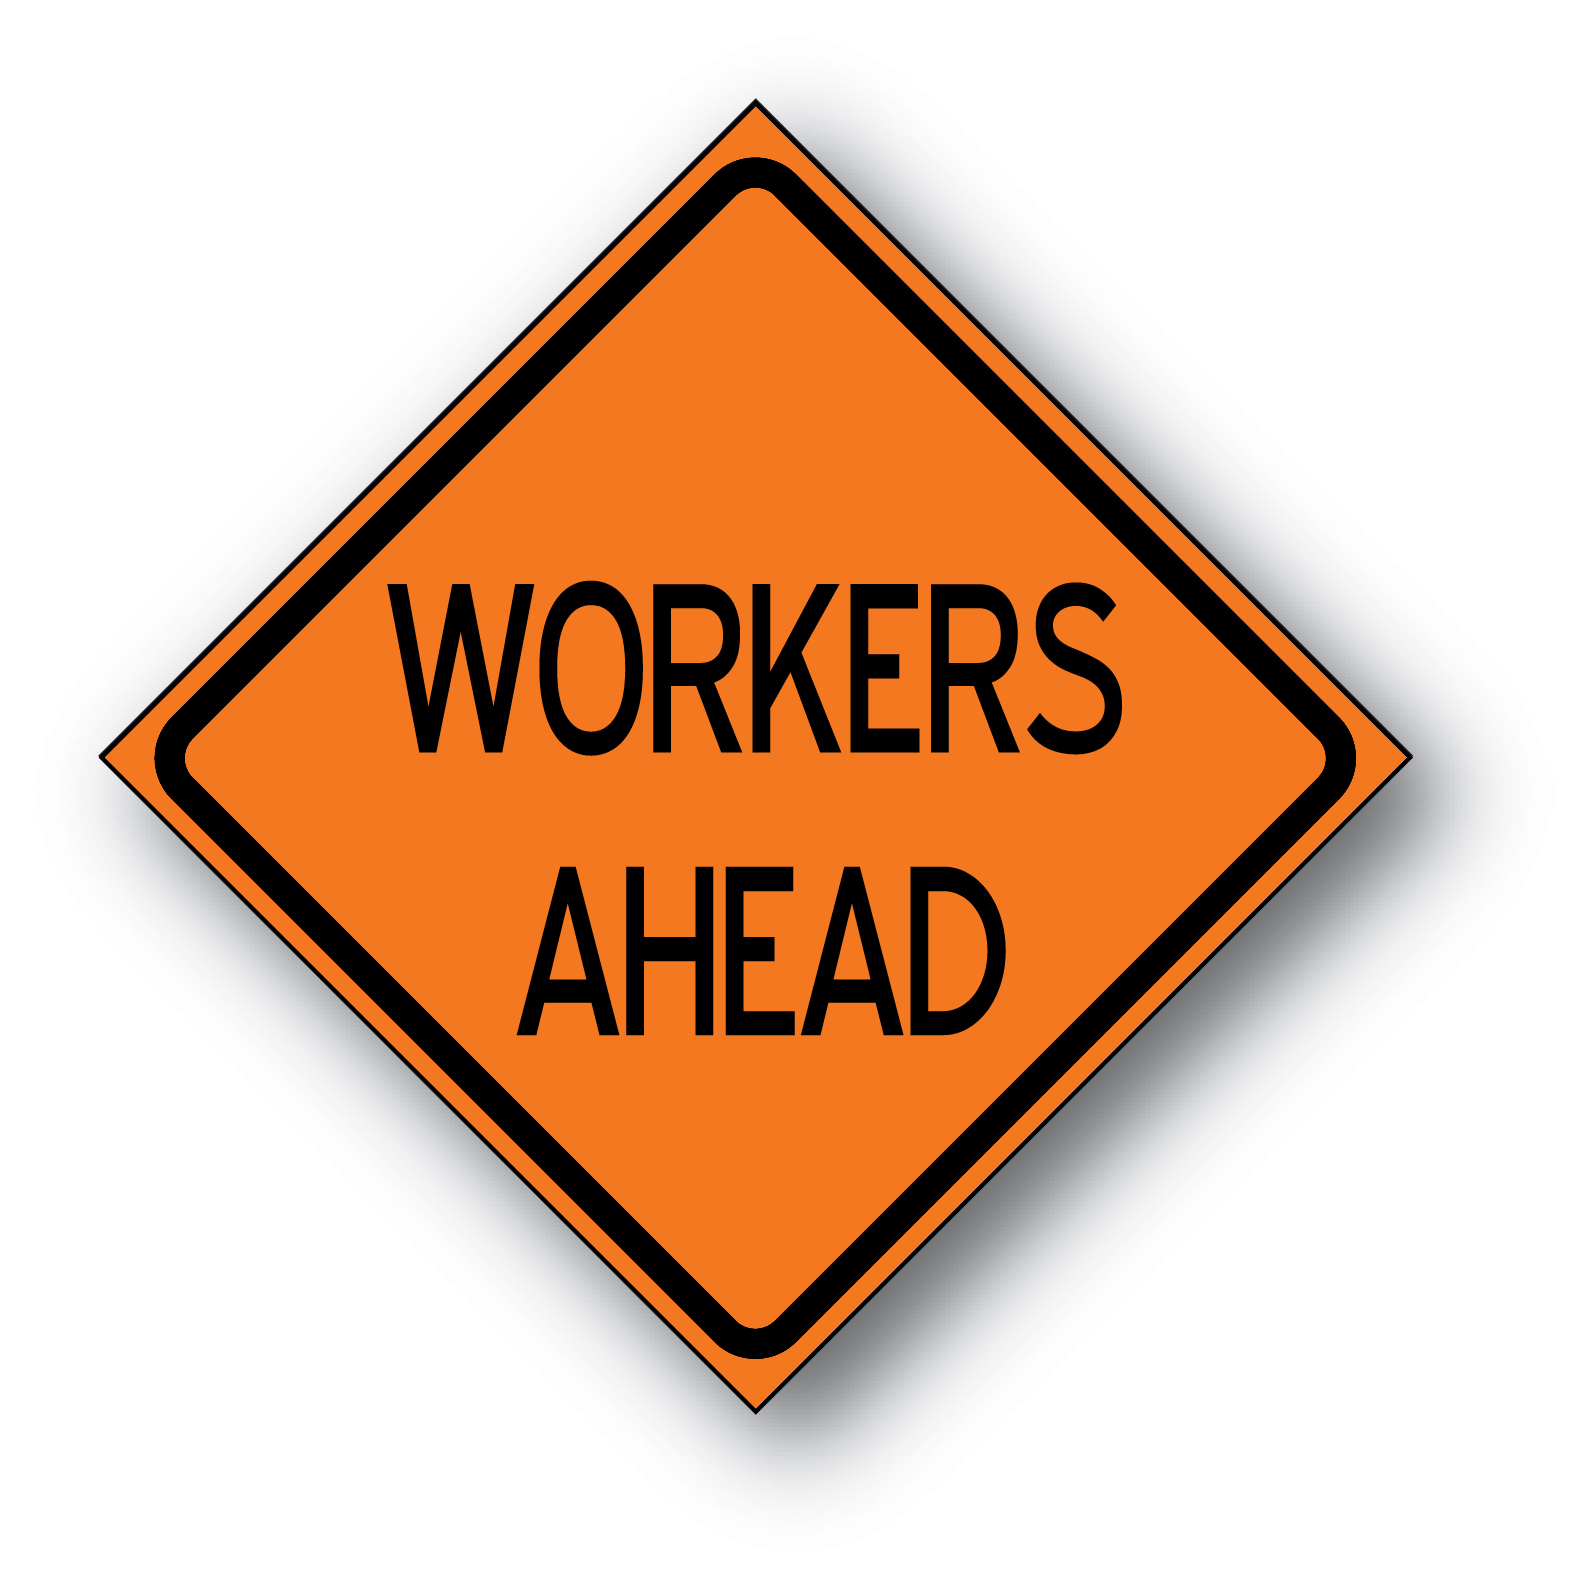 Workers-ahead